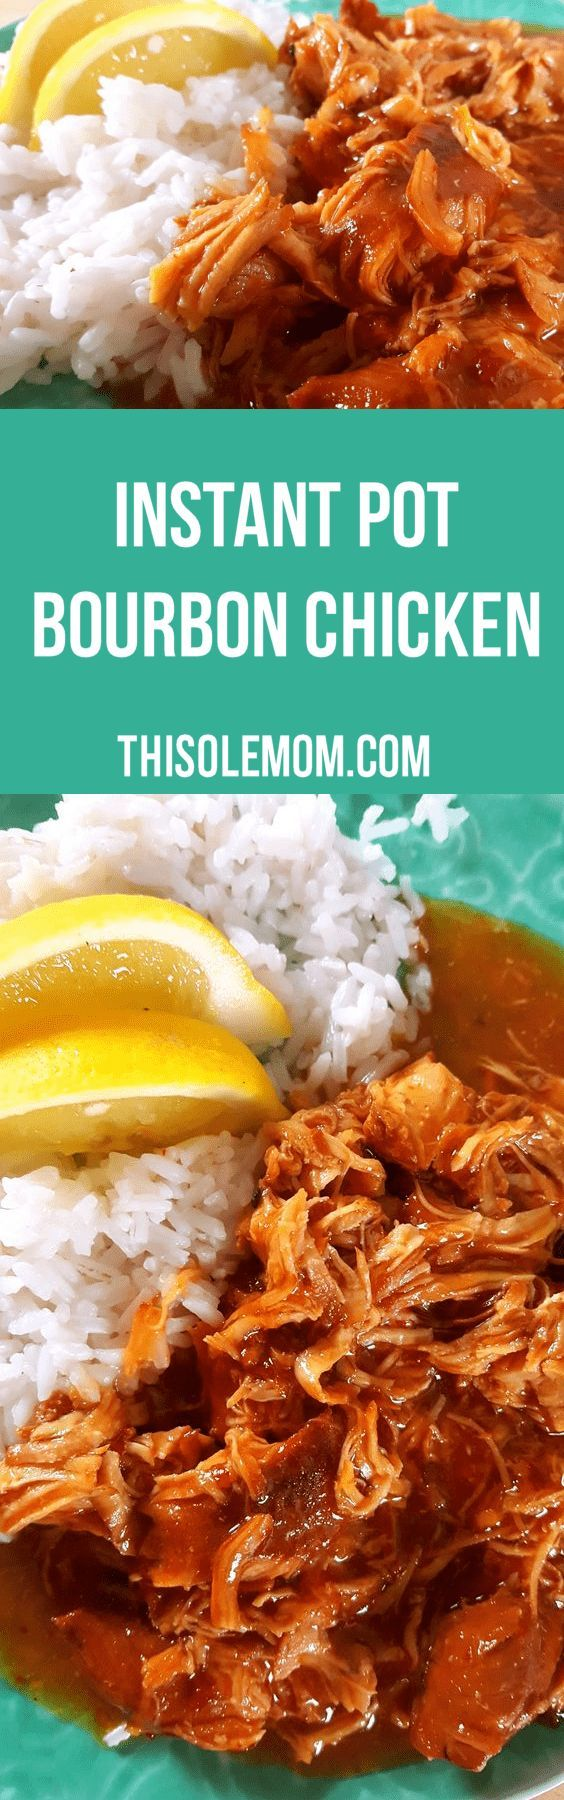 Instant Pot Bourbon Chicken Recipe..it's a family favorite! Easy to make and it cooks to super perfection!